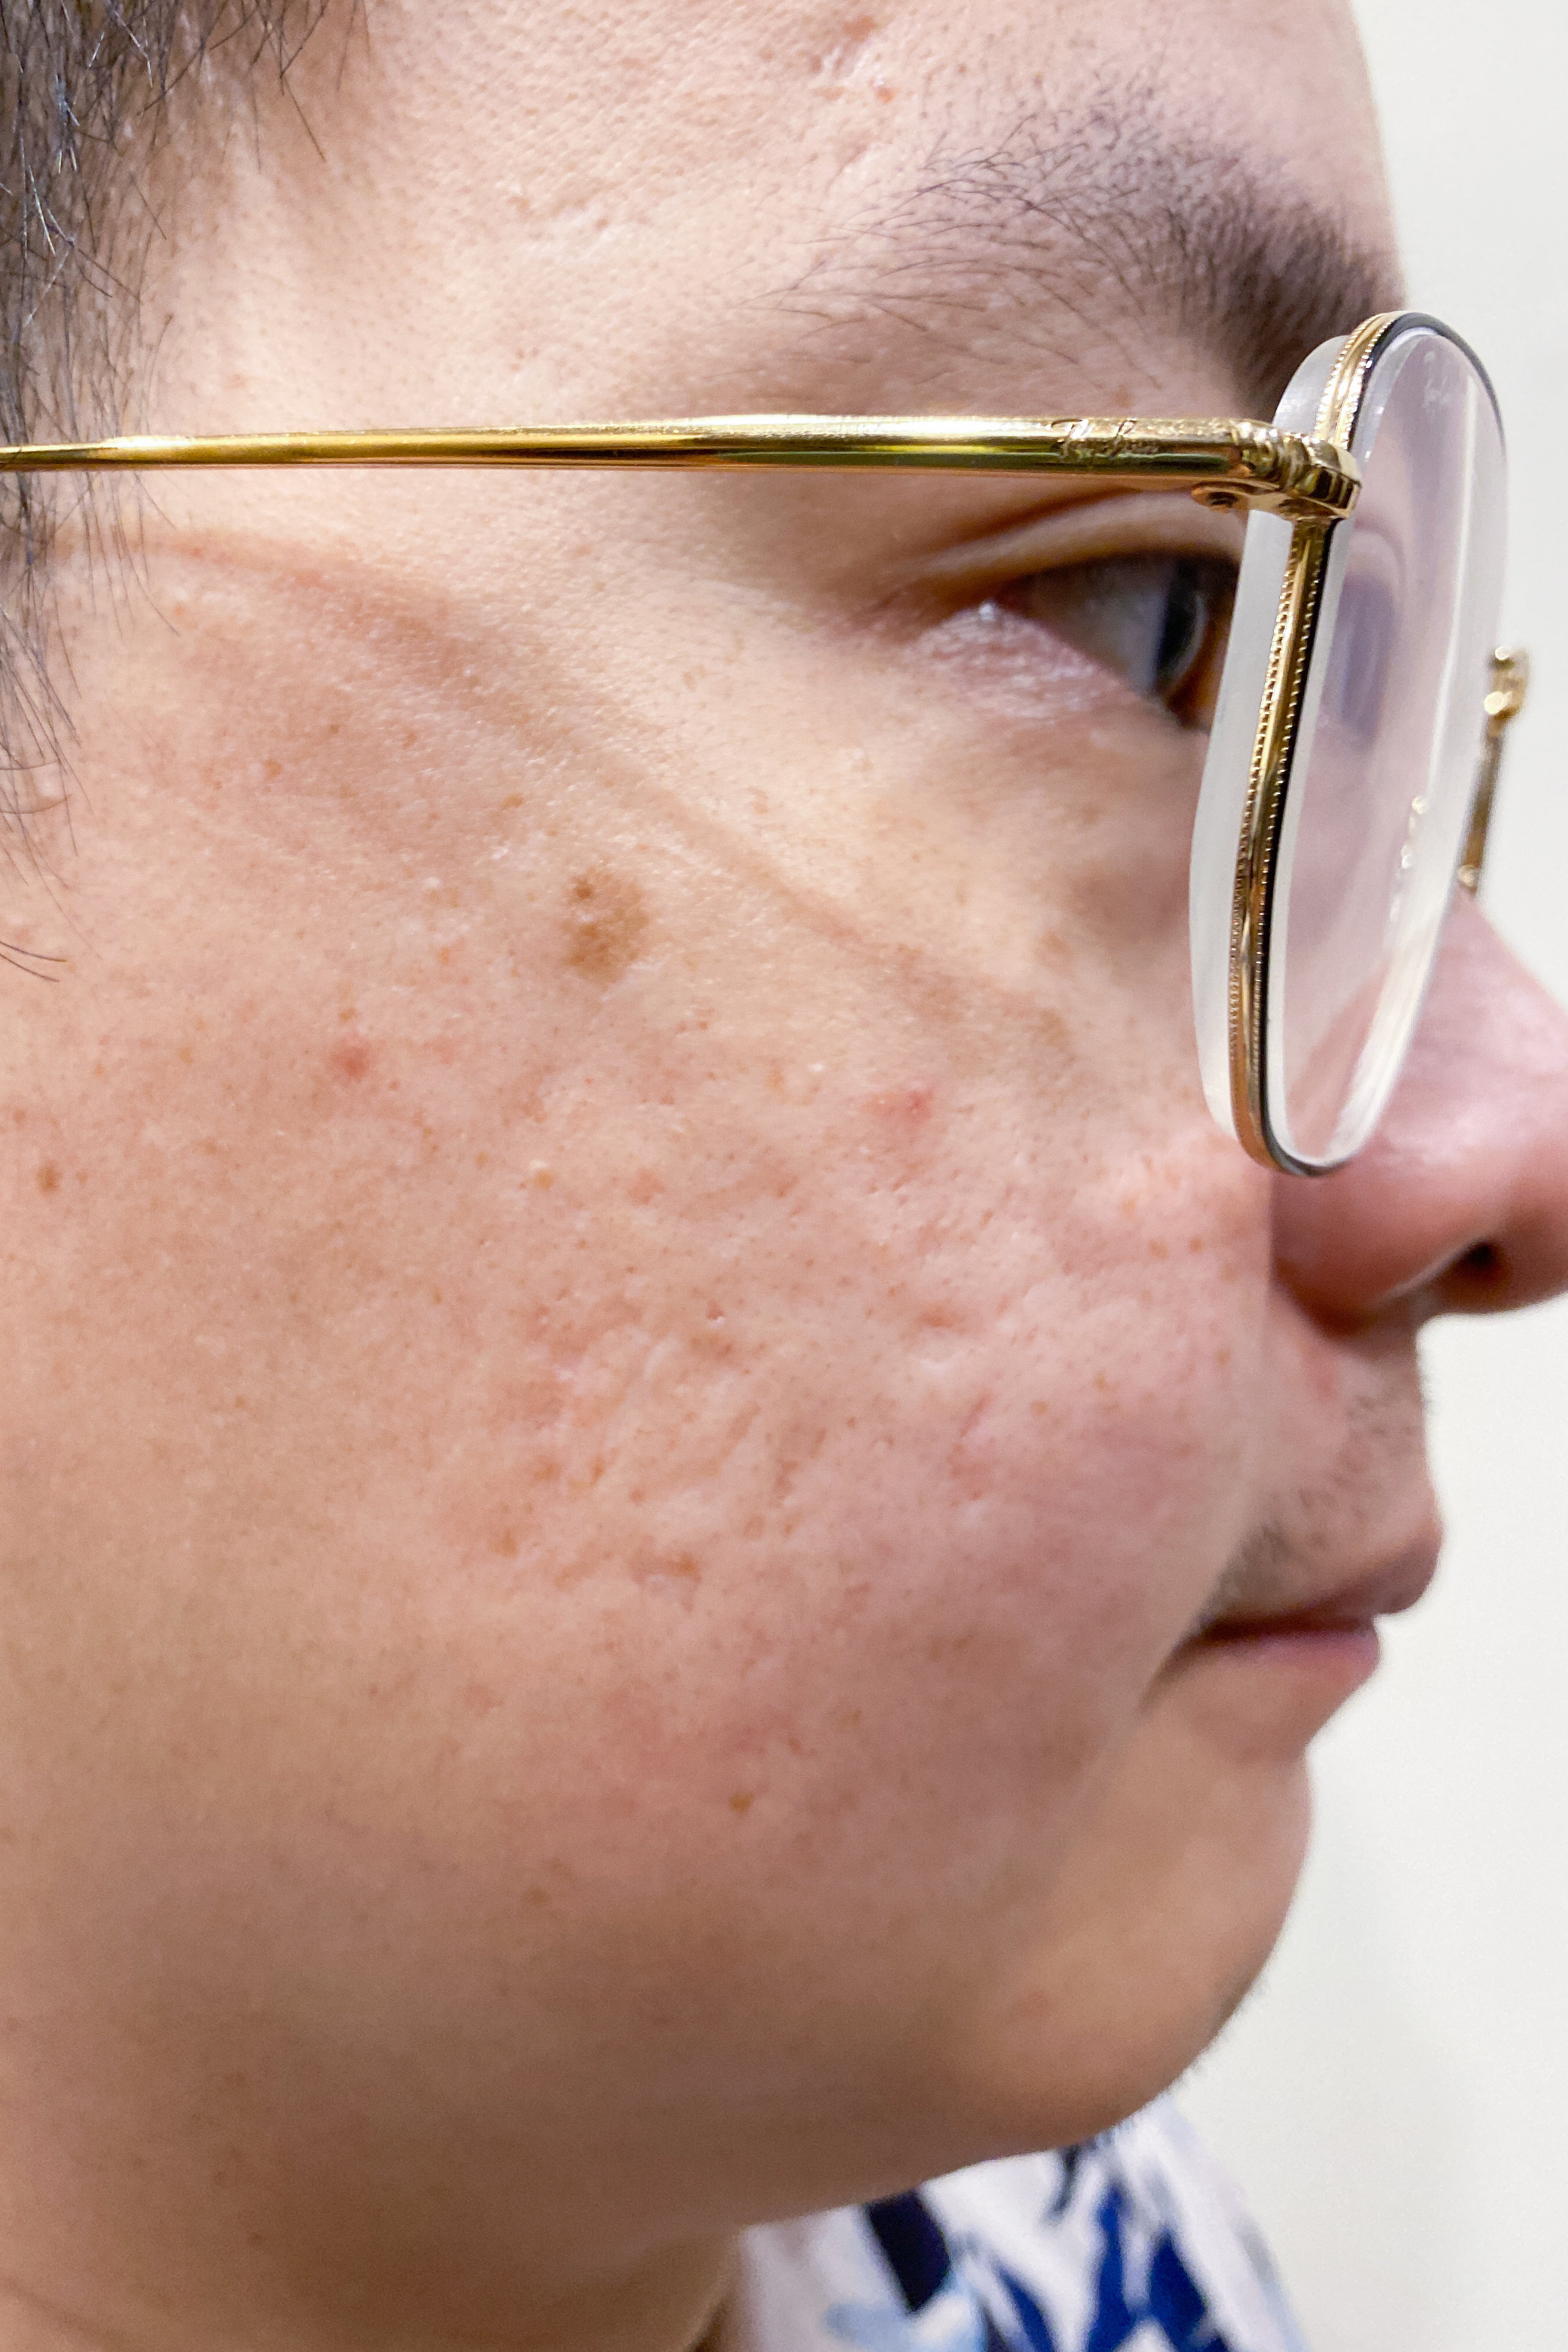 Dry, Rough and Acne Prone Treatment at Organics Beauty